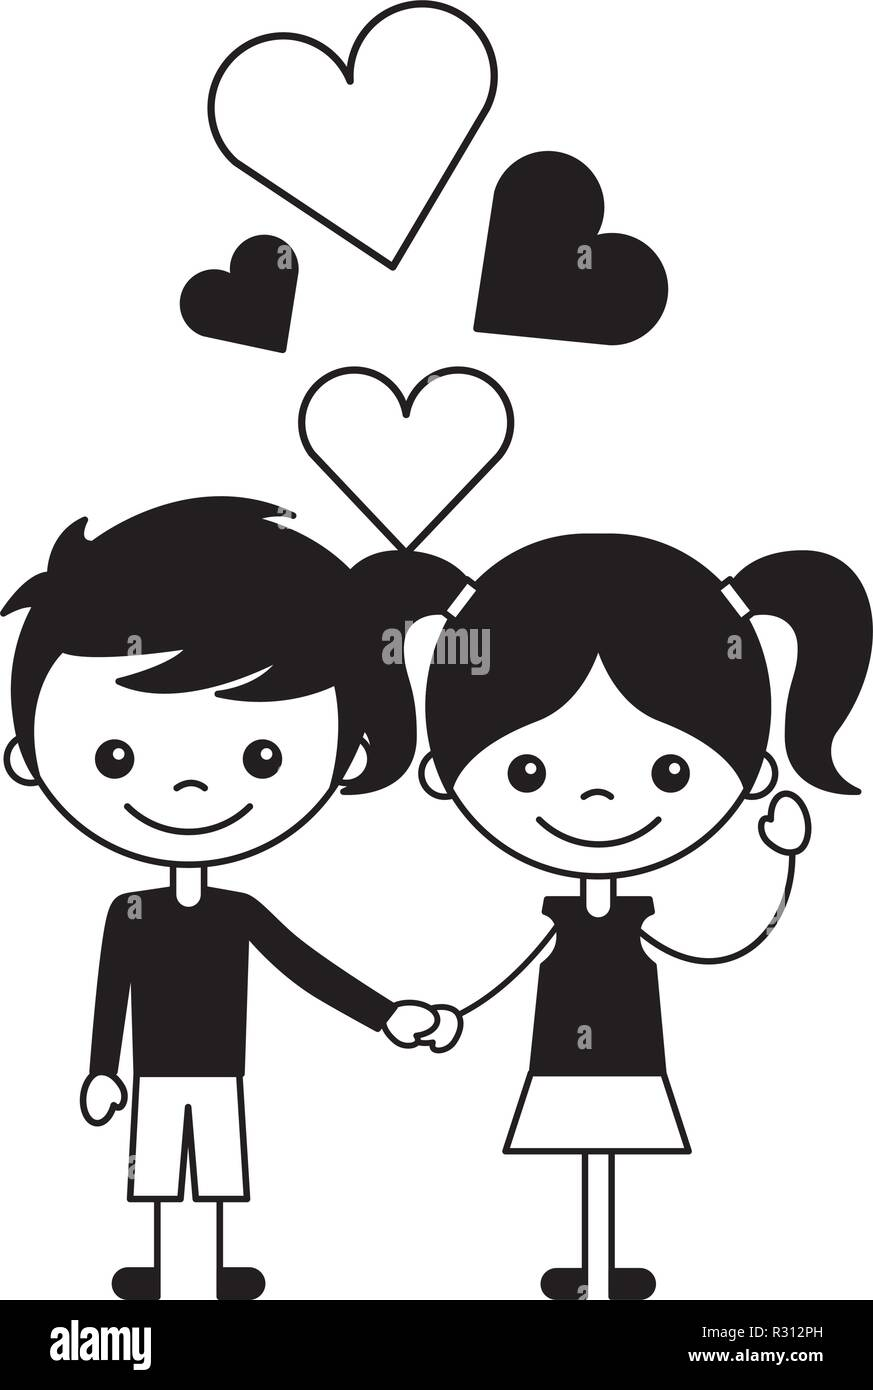 Boy And Girl Love Hearts Cartoon Vector Illustration Stock Vector